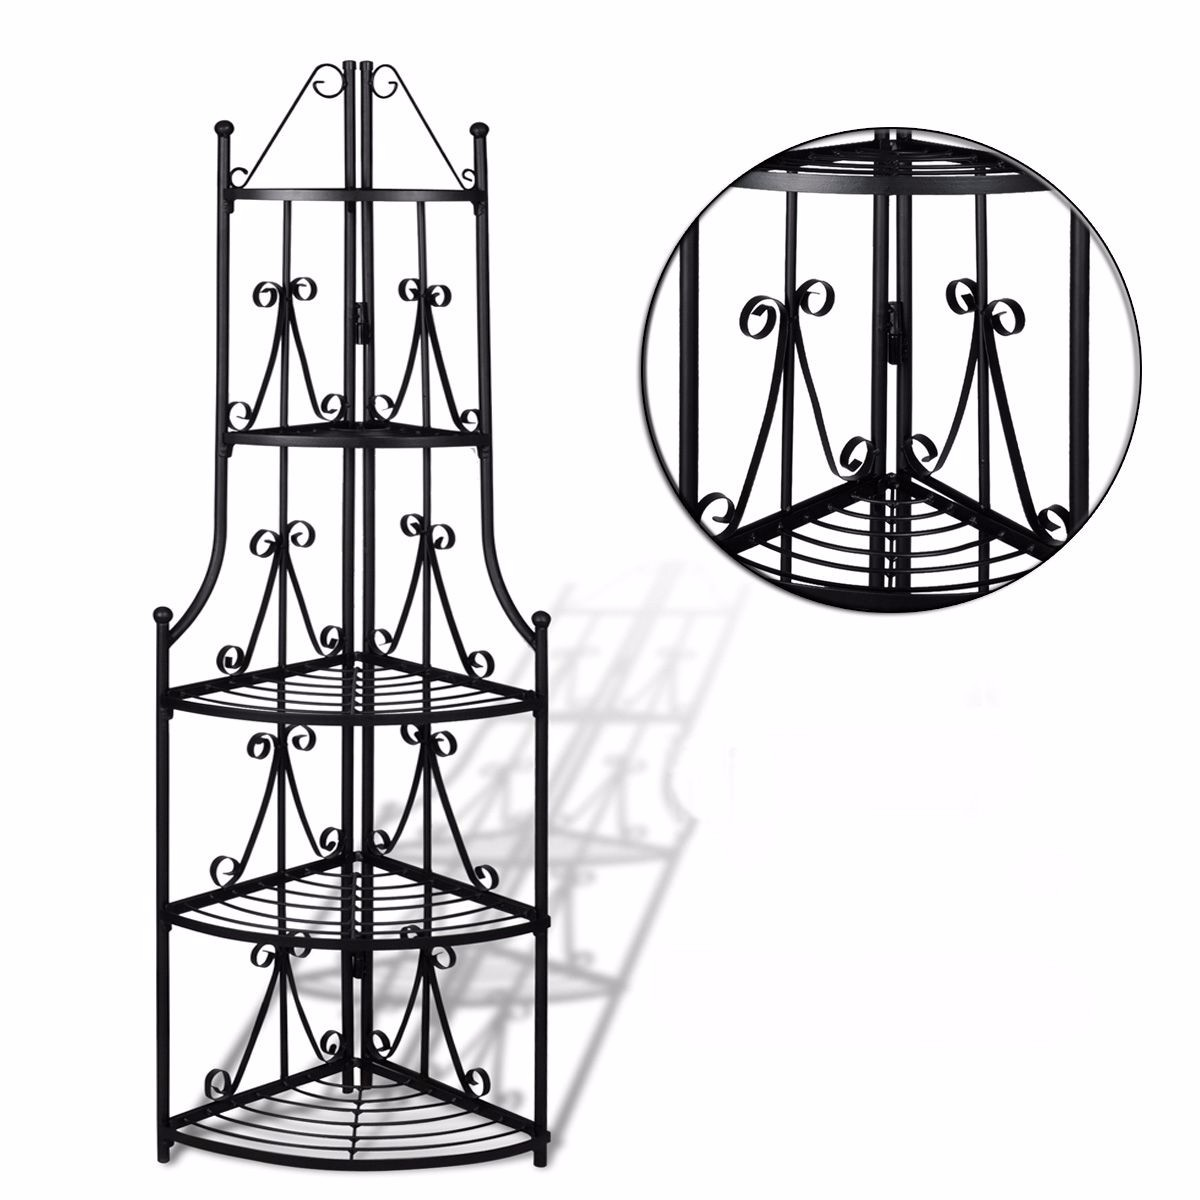 5 Tier Metal Corner Plant Stand Flower Display Shelf